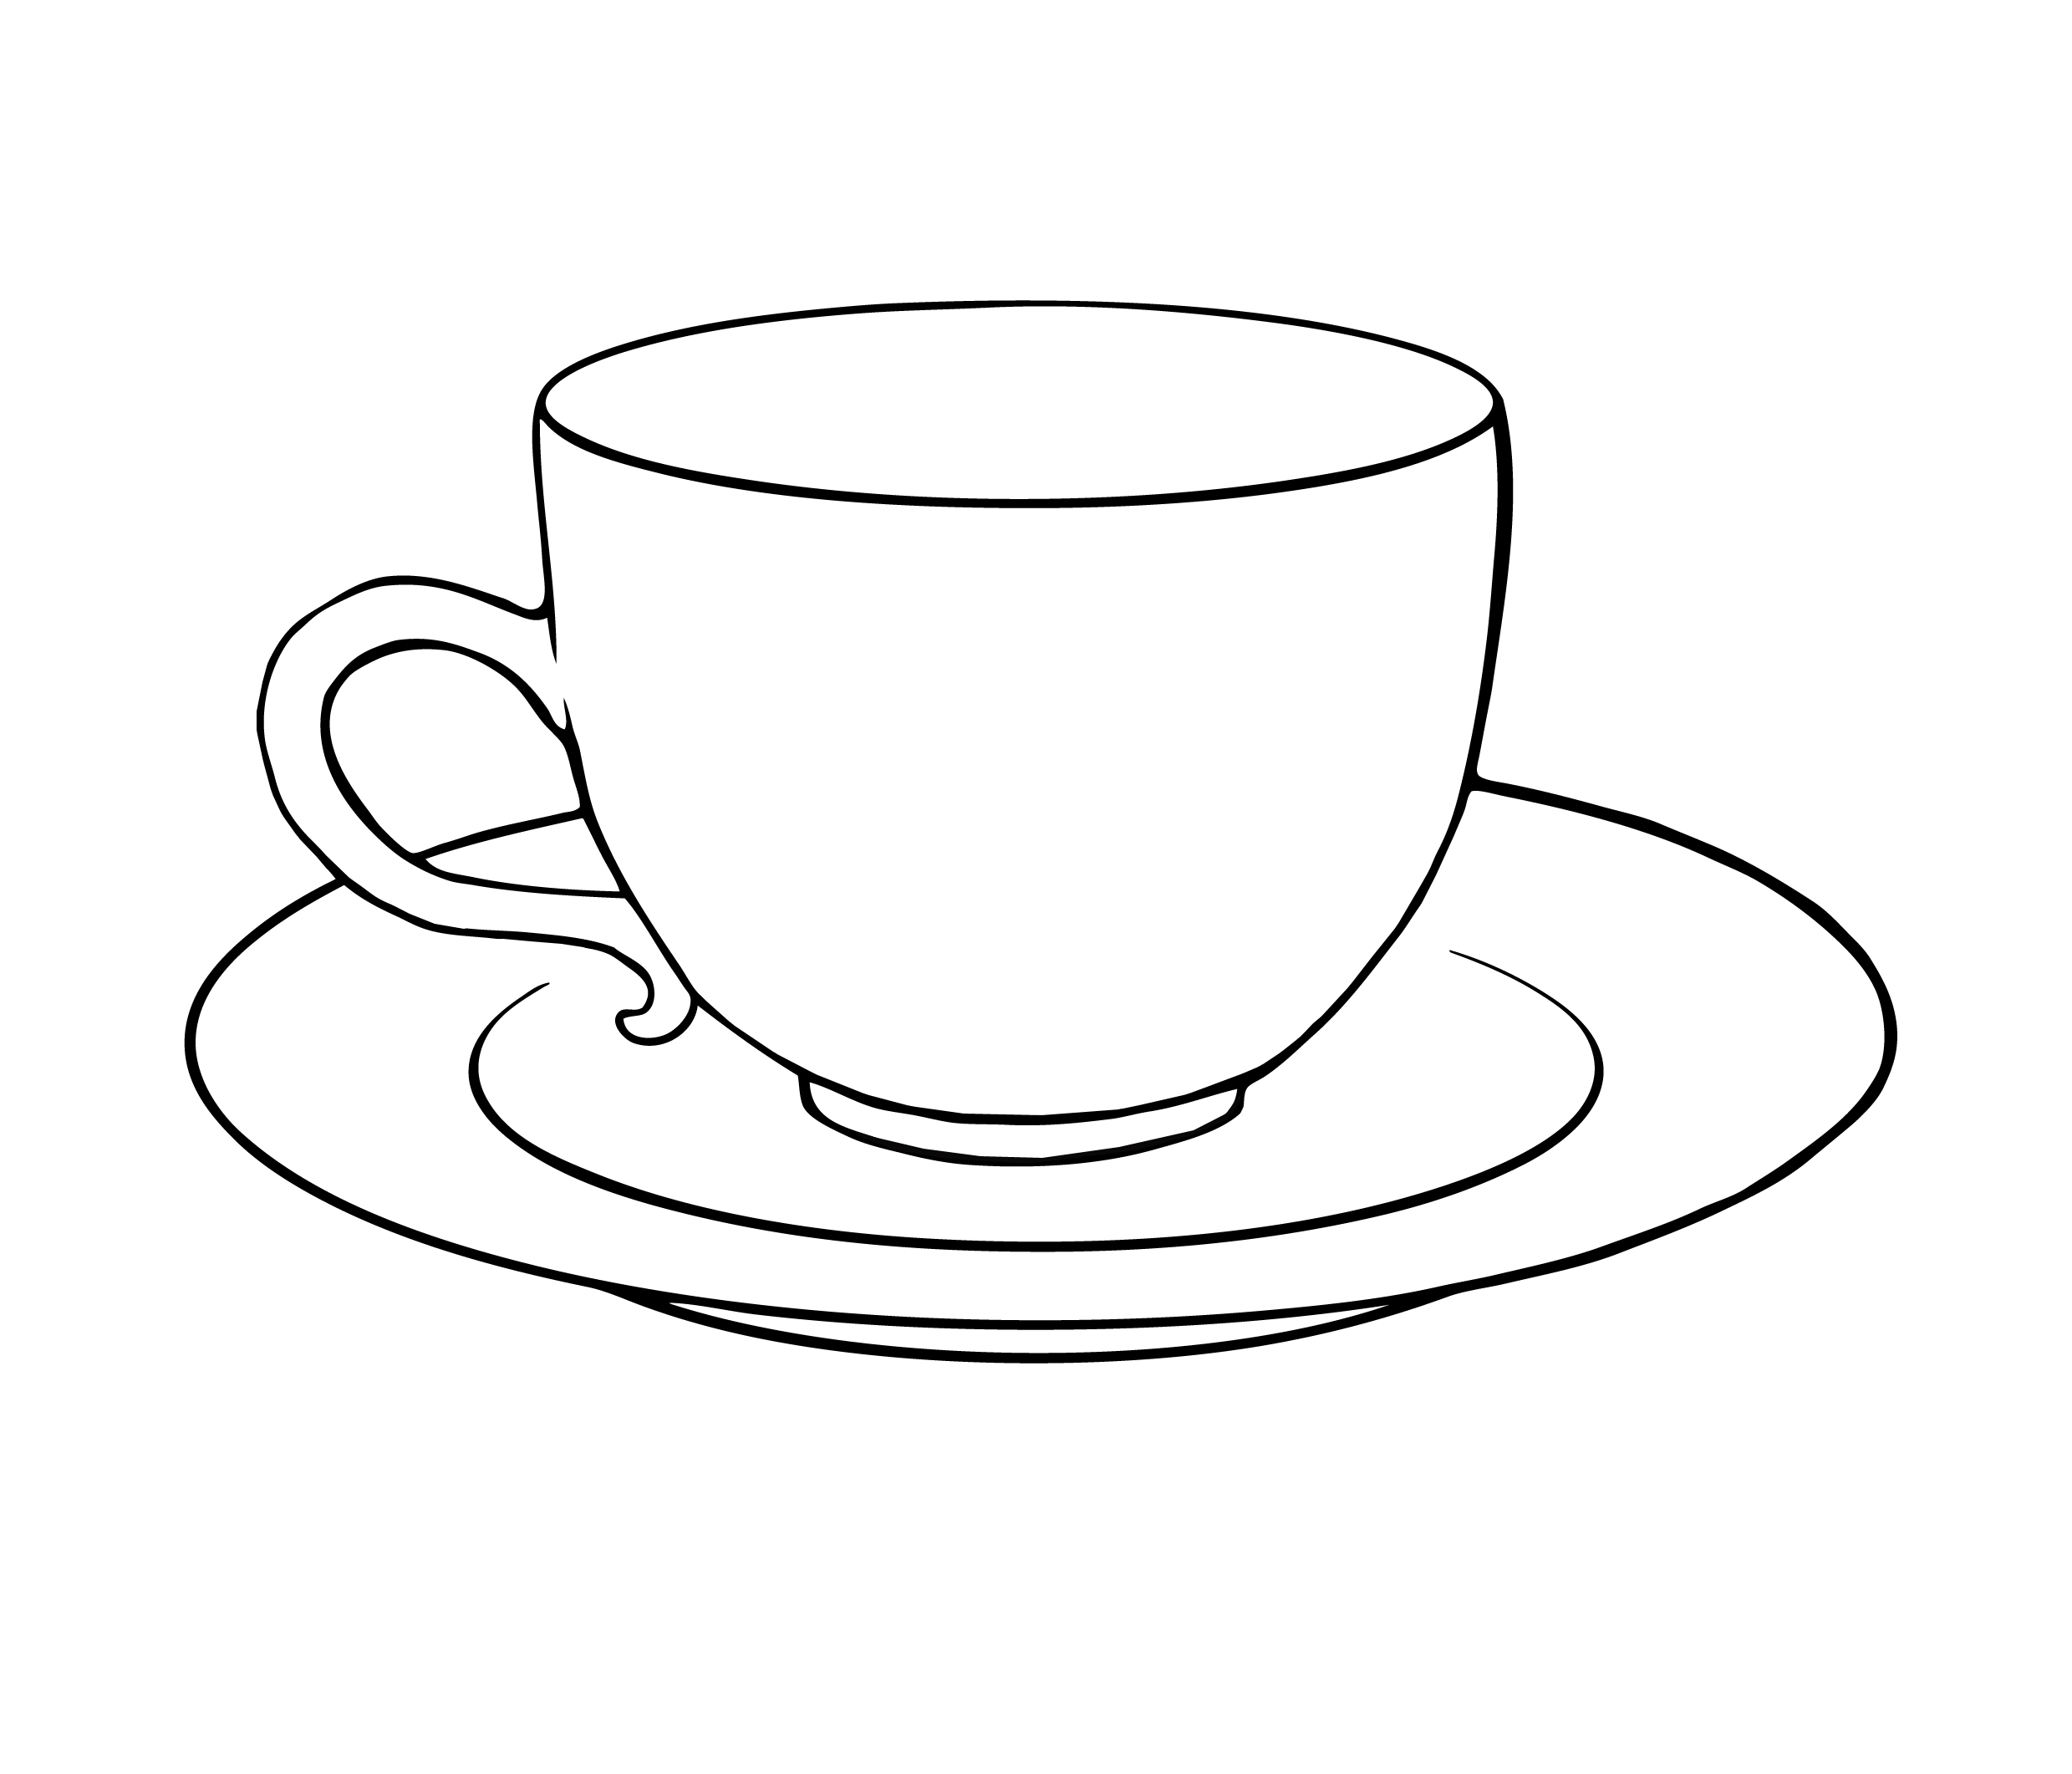 Tea cup colouring page clipart best for Cup picture for colouring